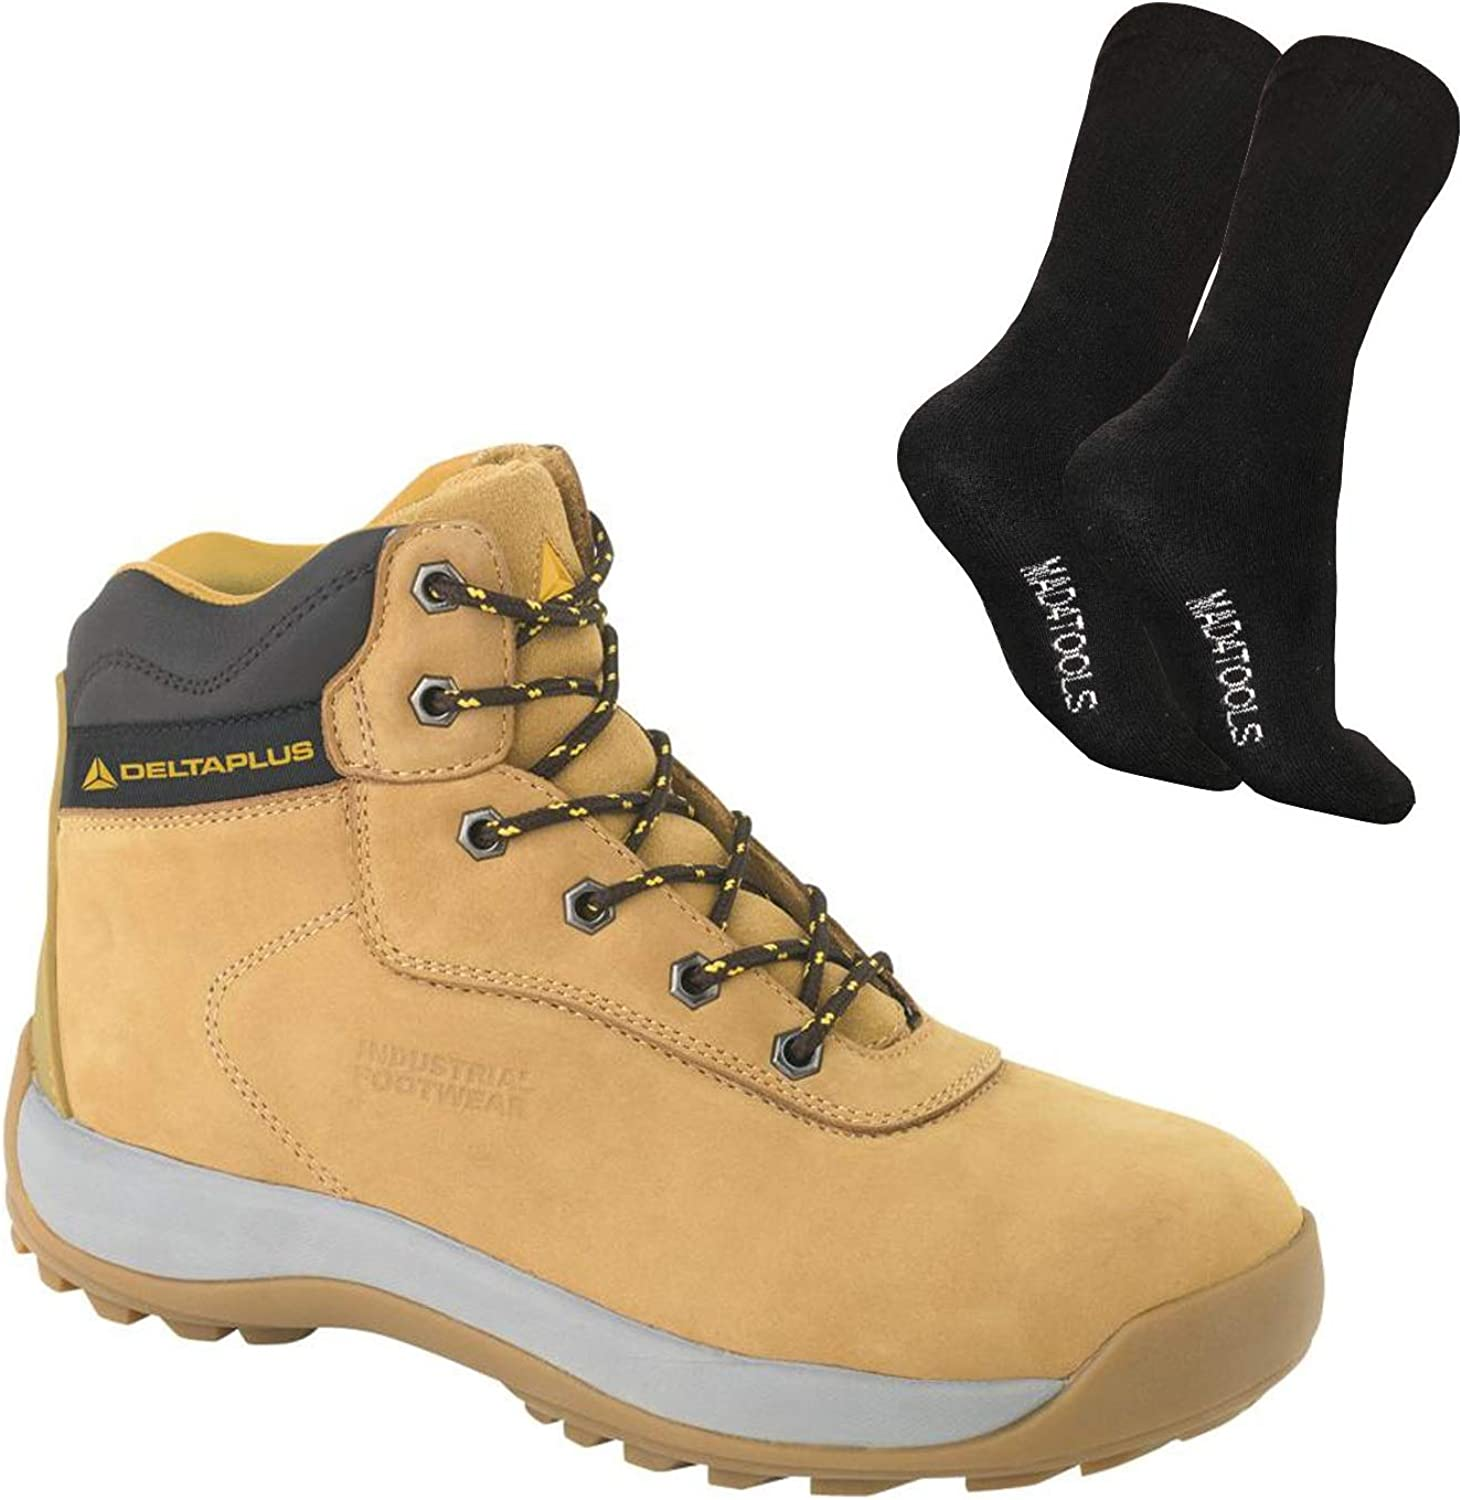 Delta Plus LH840 Nubuck Leather Steel Toe Cap Hiker Safety Work Boots Tan - Sizes 7-12 & mad4tools Work Boot Socks (1 Pair)